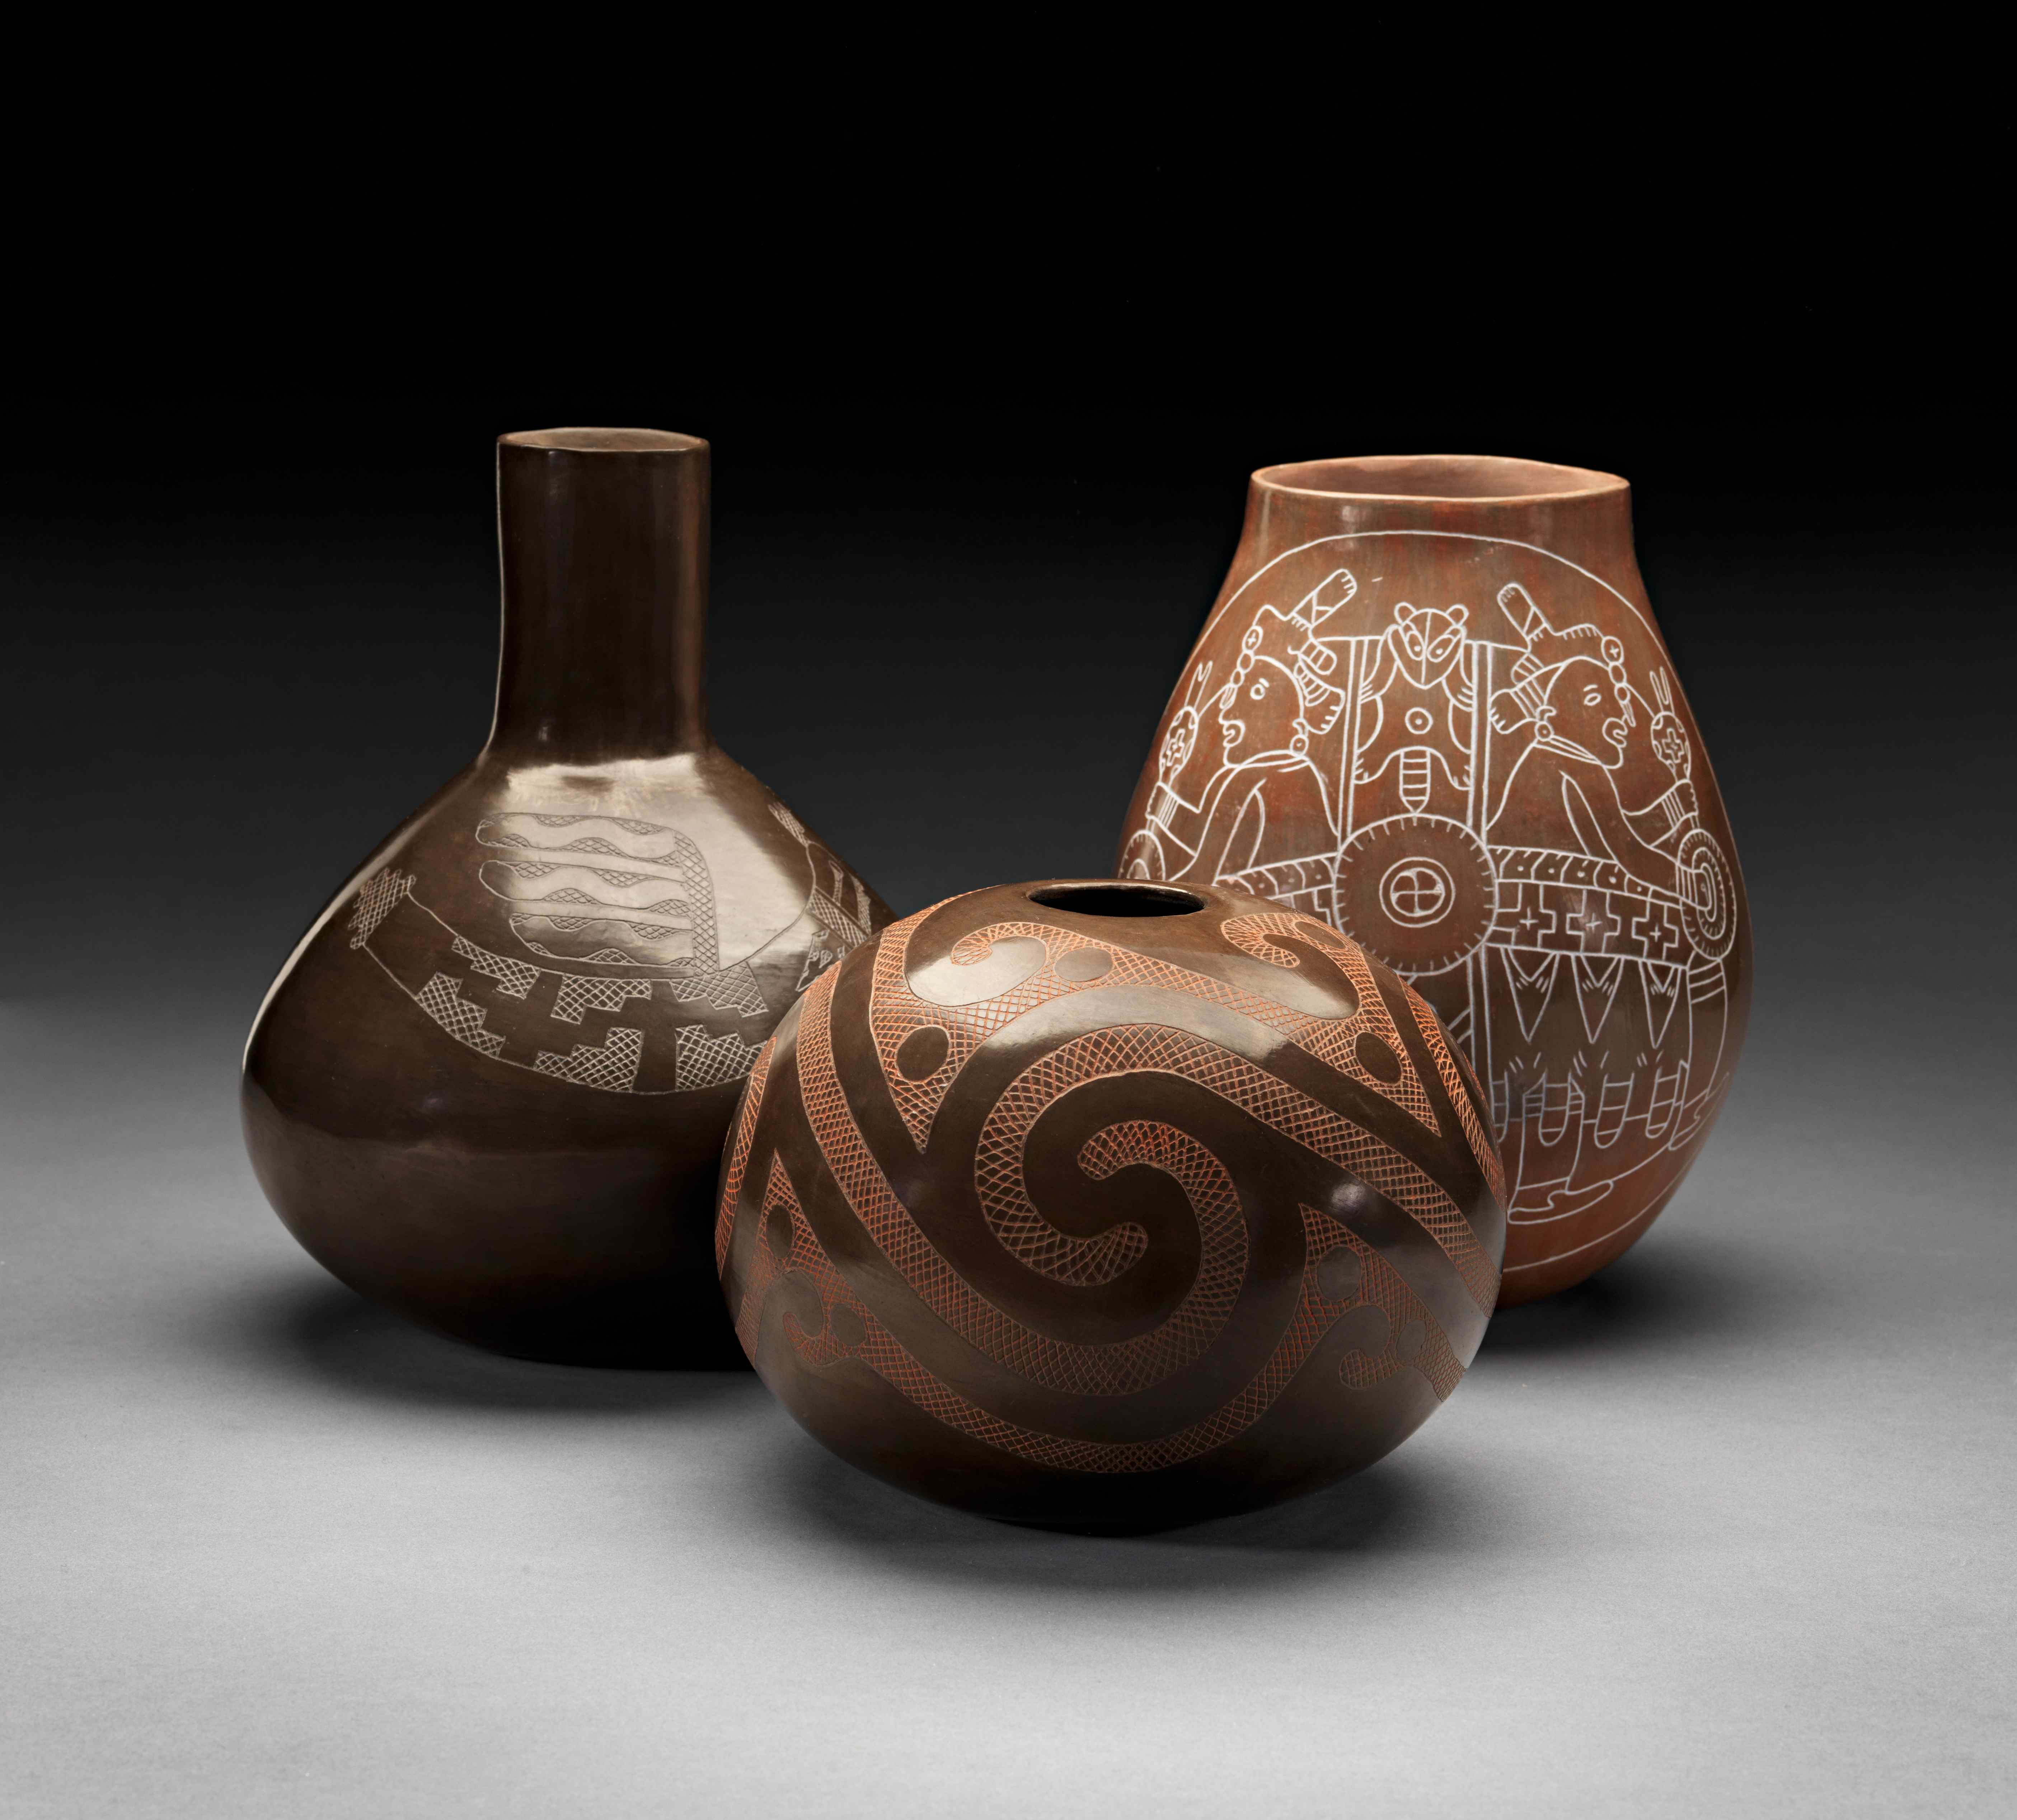 clay vessels by native american potter jeri redcorn added to